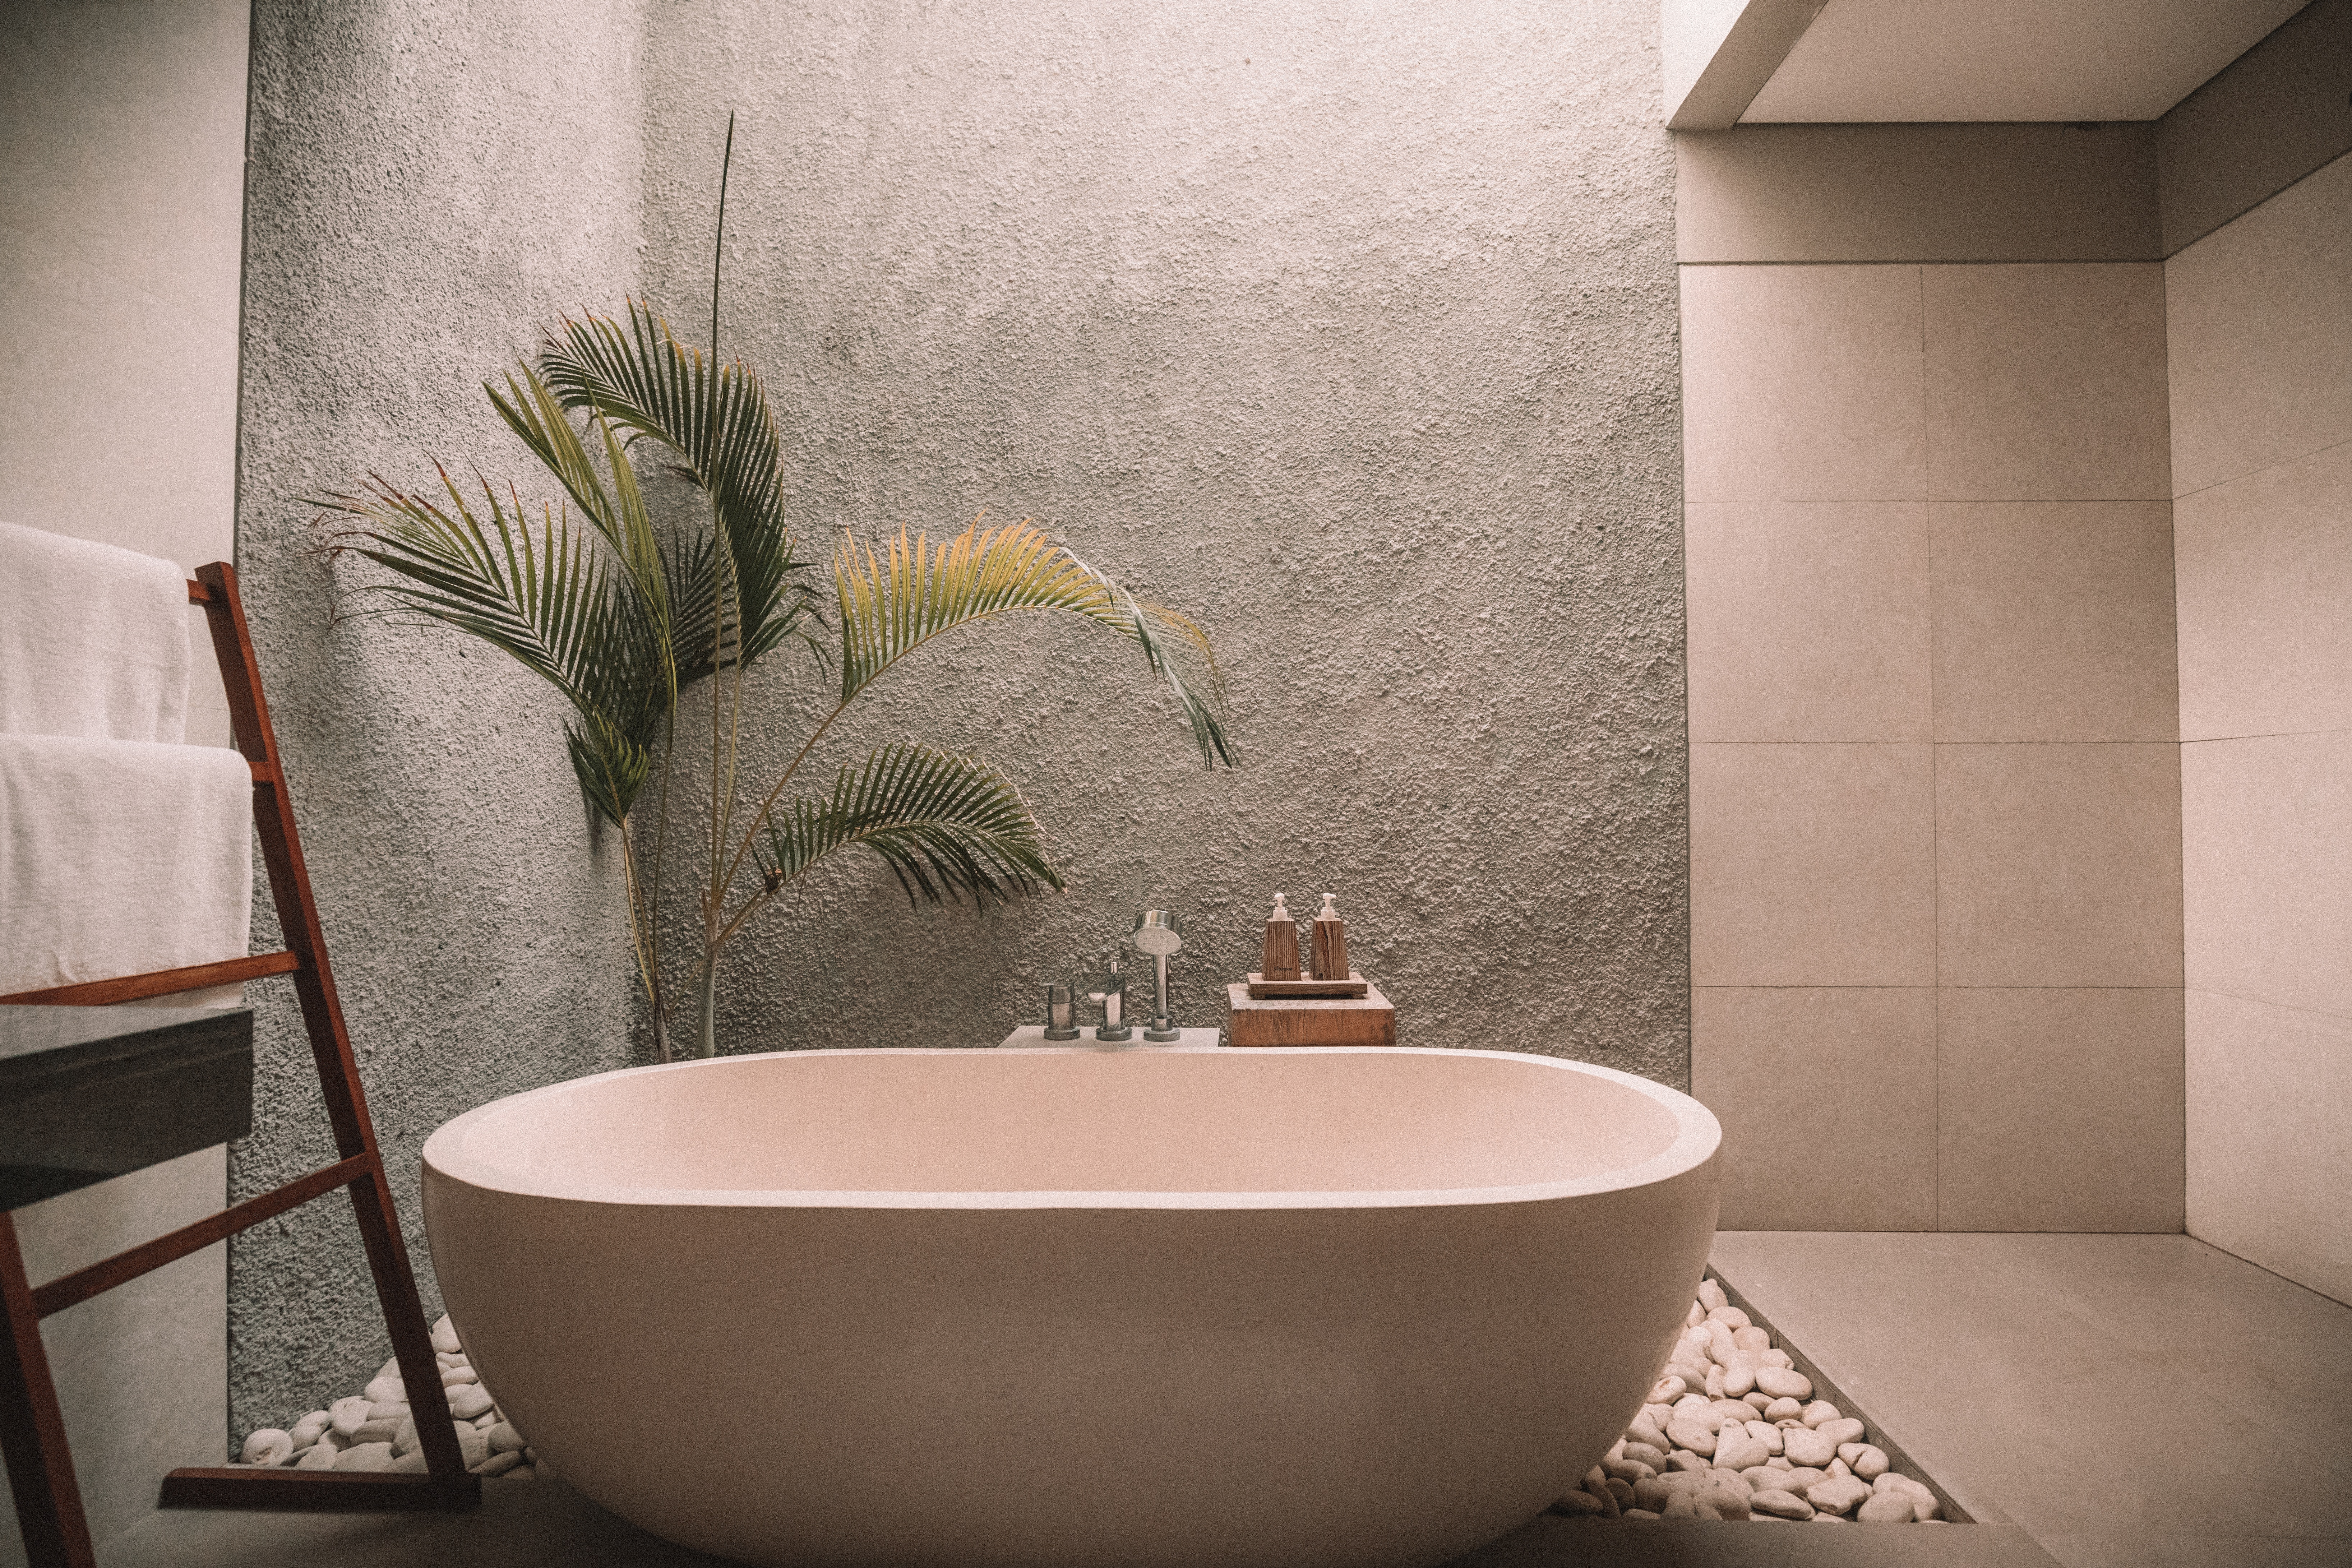 5 tips on how to ace your Bathroom interior design